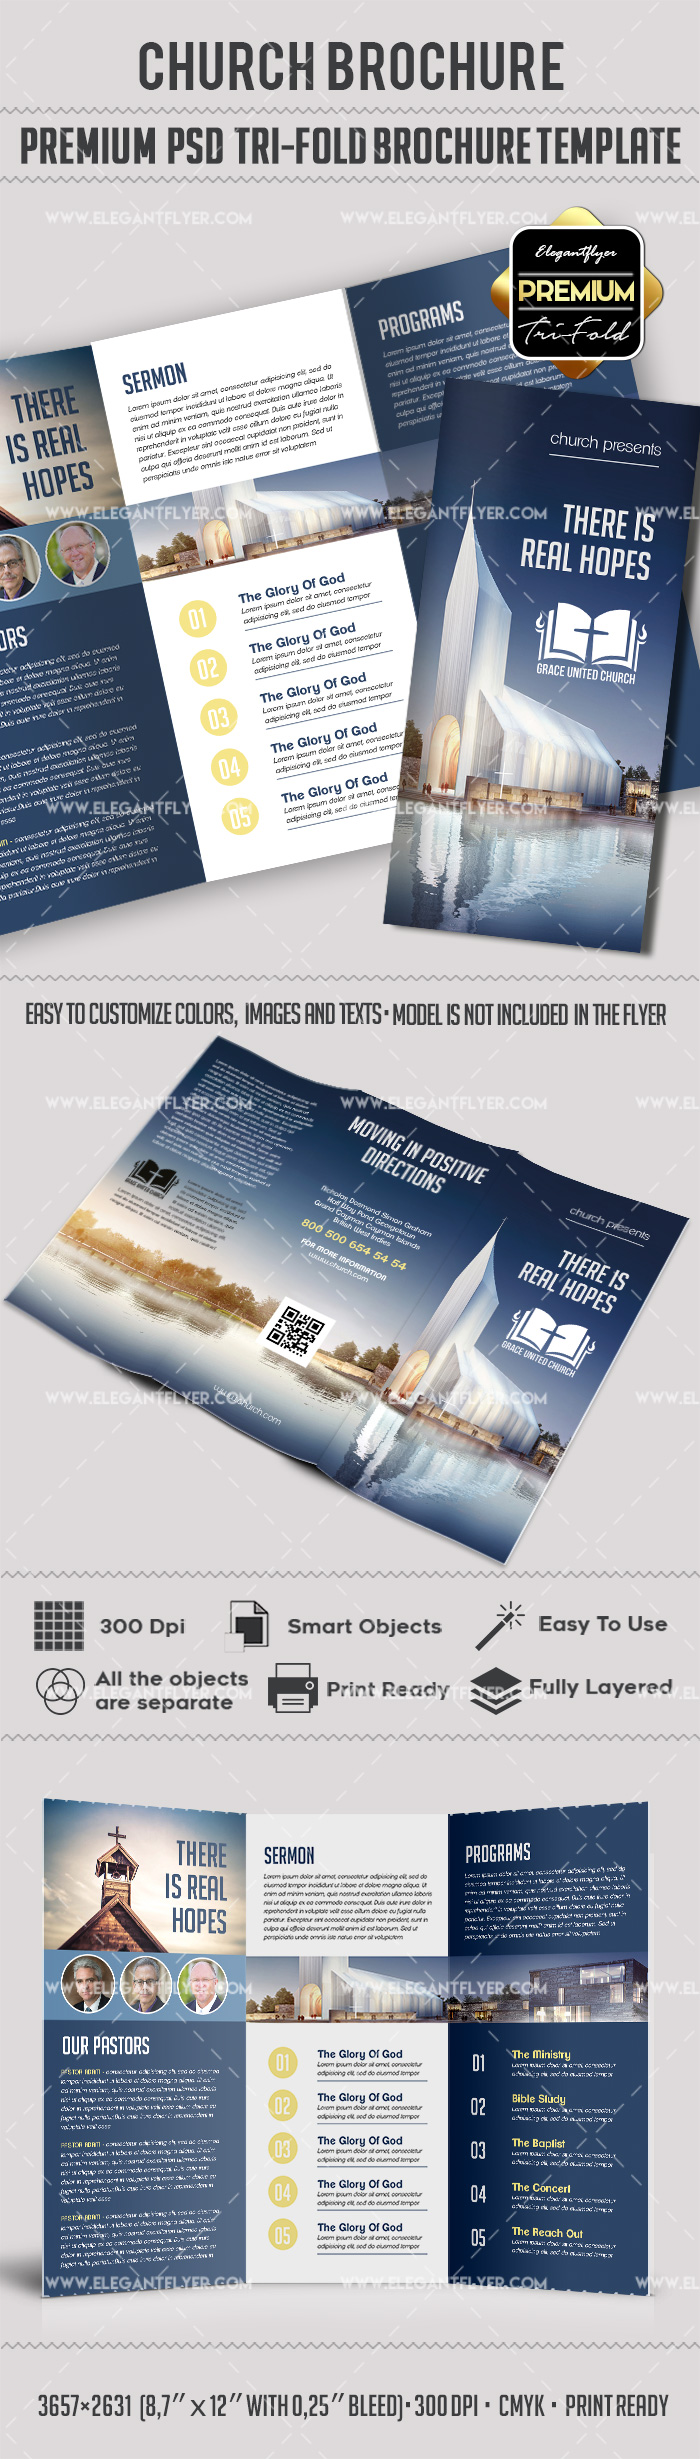 church premium tri fold psd brochure template by elegantflyer. Black Bedroom Furniture Sets. Home Design Ideas